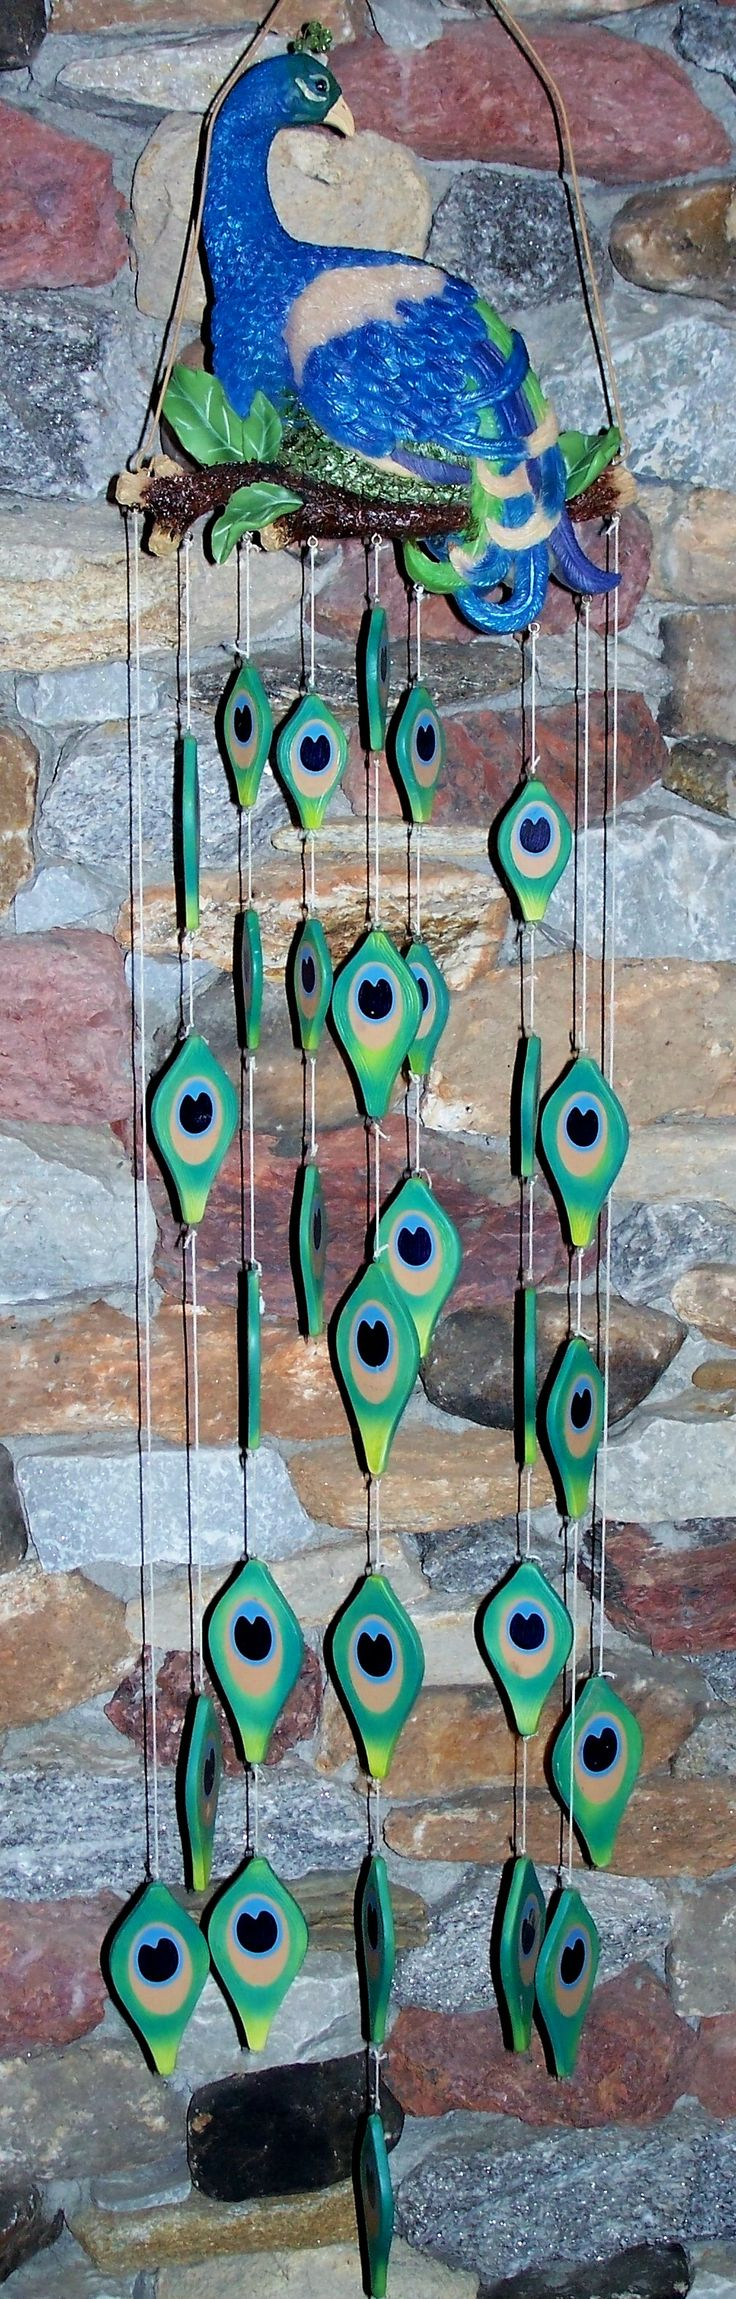 Large Peacock Decorations | WIND CHIME w/ CERAMIC FEATHER CHIMES